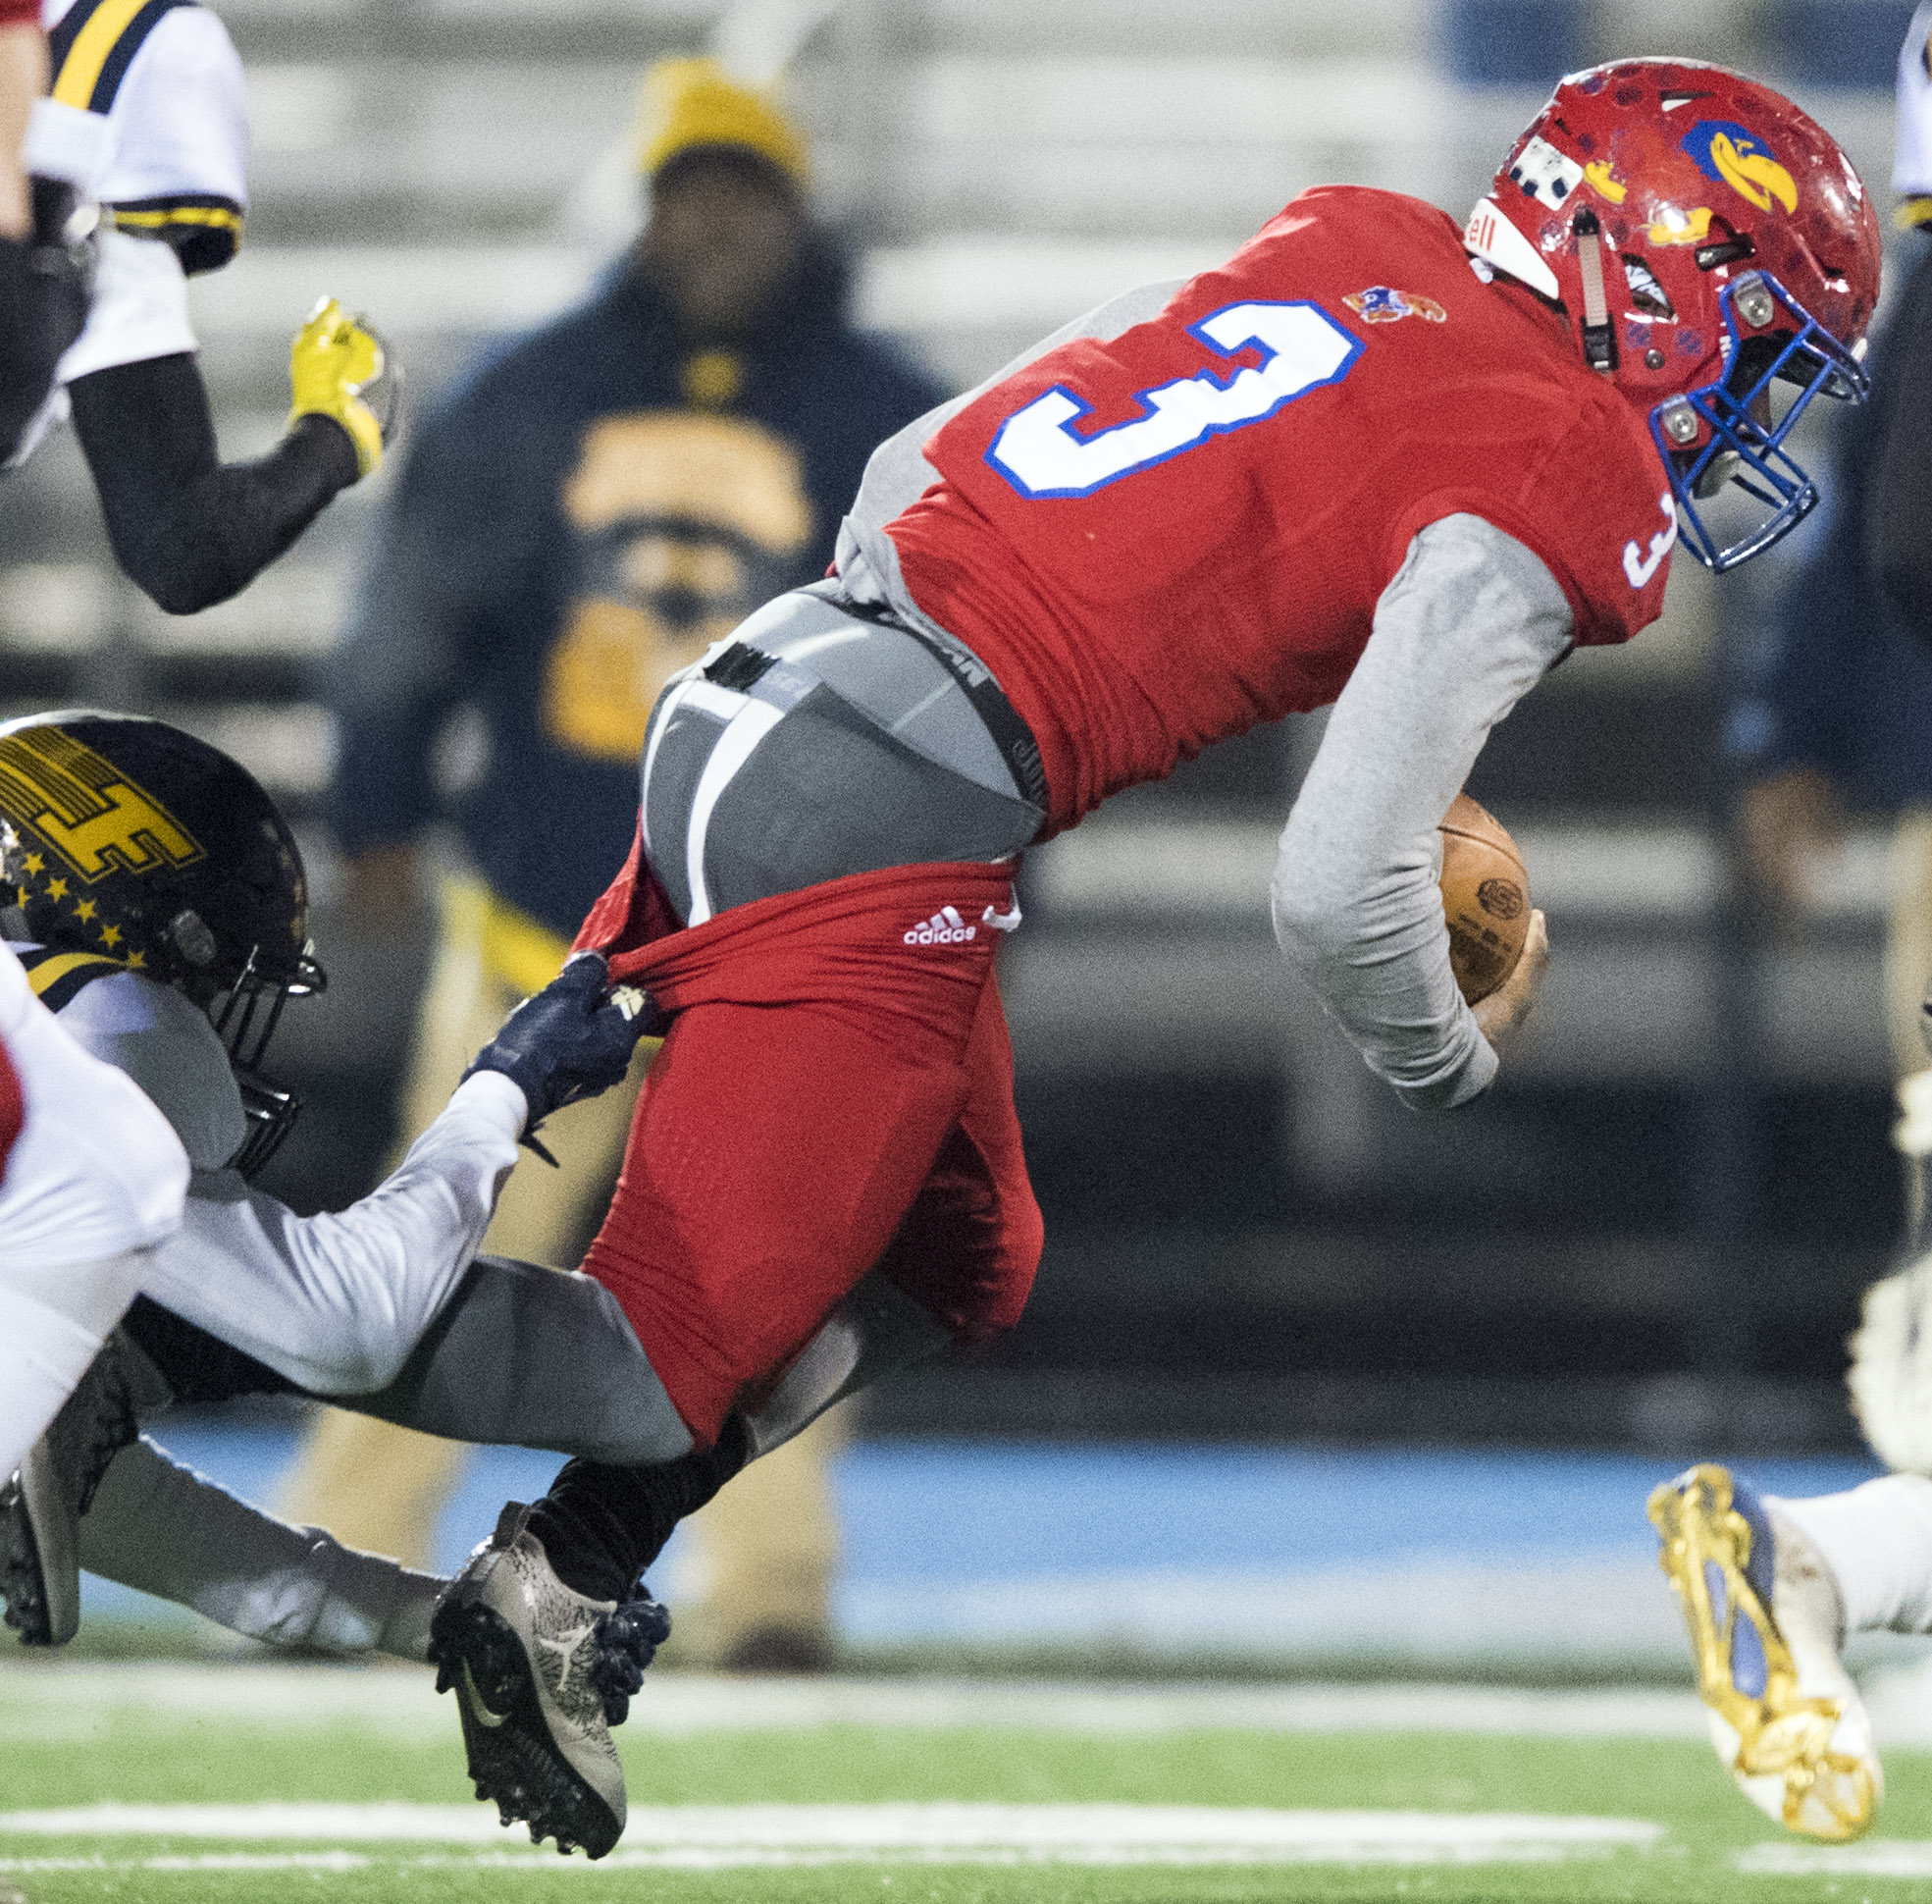 Jeannette's Robert Kennedy rushes as Farrell's Brian Hilton Jr. pulls his pants during the PIAA Class A semifinal on Friday, Dec. 1, 2017 at Seneca Valley High School. (Steph Chambers/Post-Gazette)